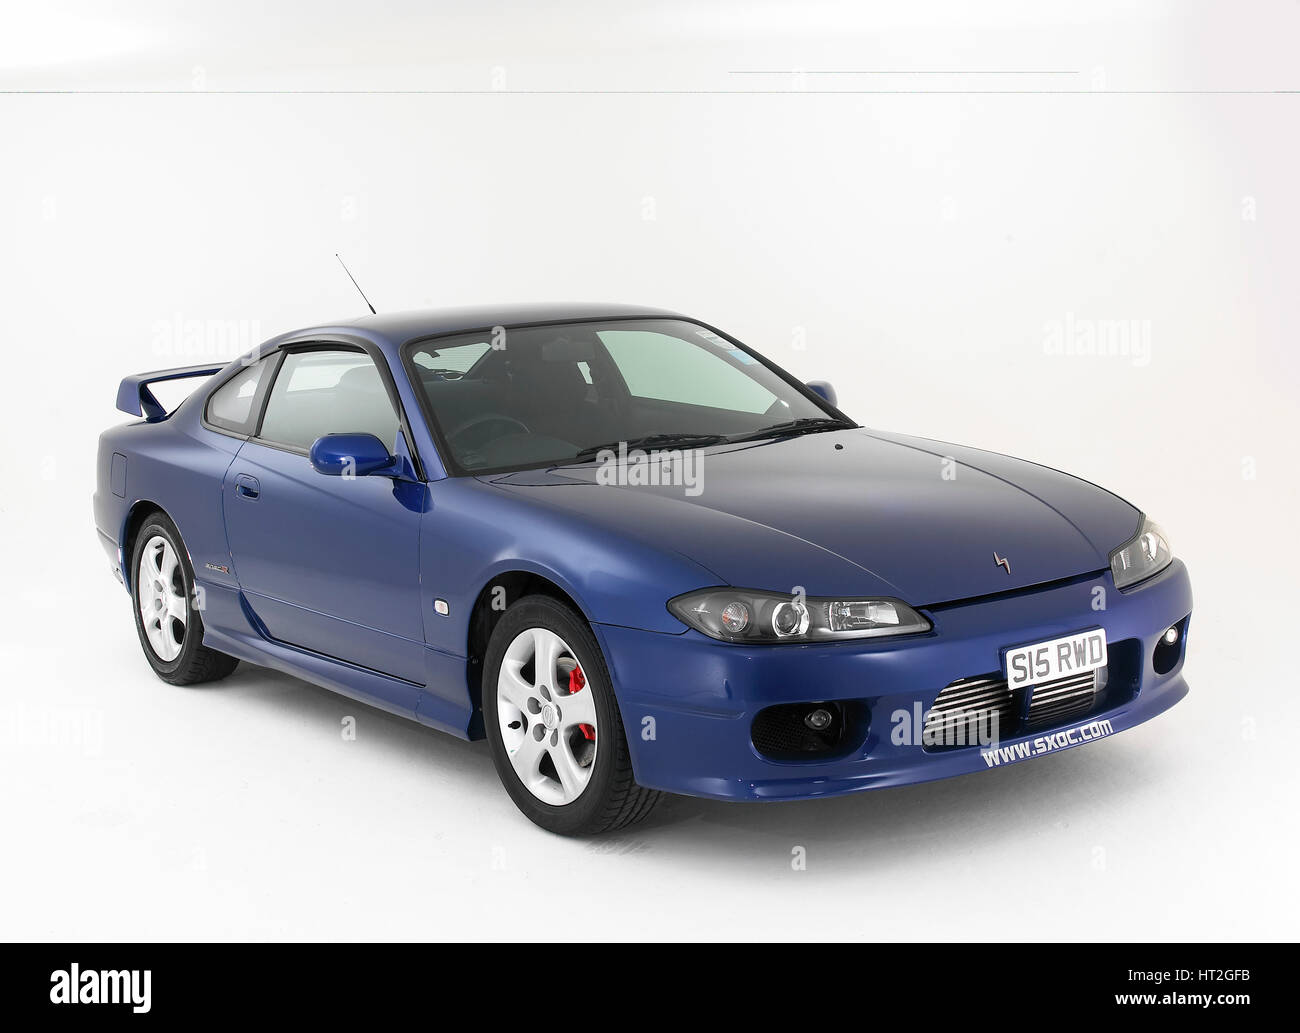 1999 Nissan Silvia Spec R Artist: Unknown.   Stock Image